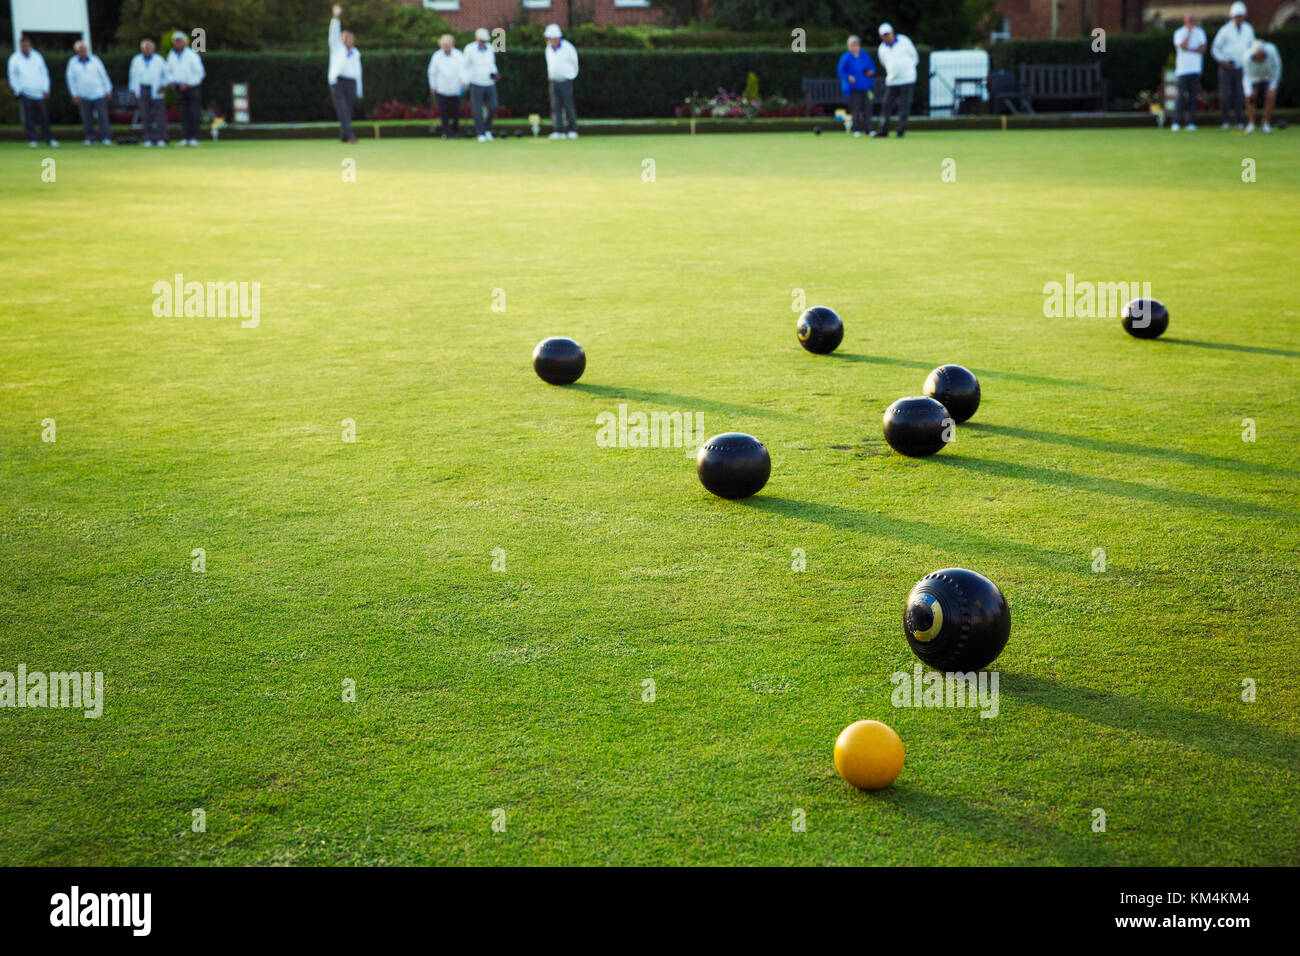 A small yellow target jack ball and a cluster of lawn bowls around it. - Stock Image